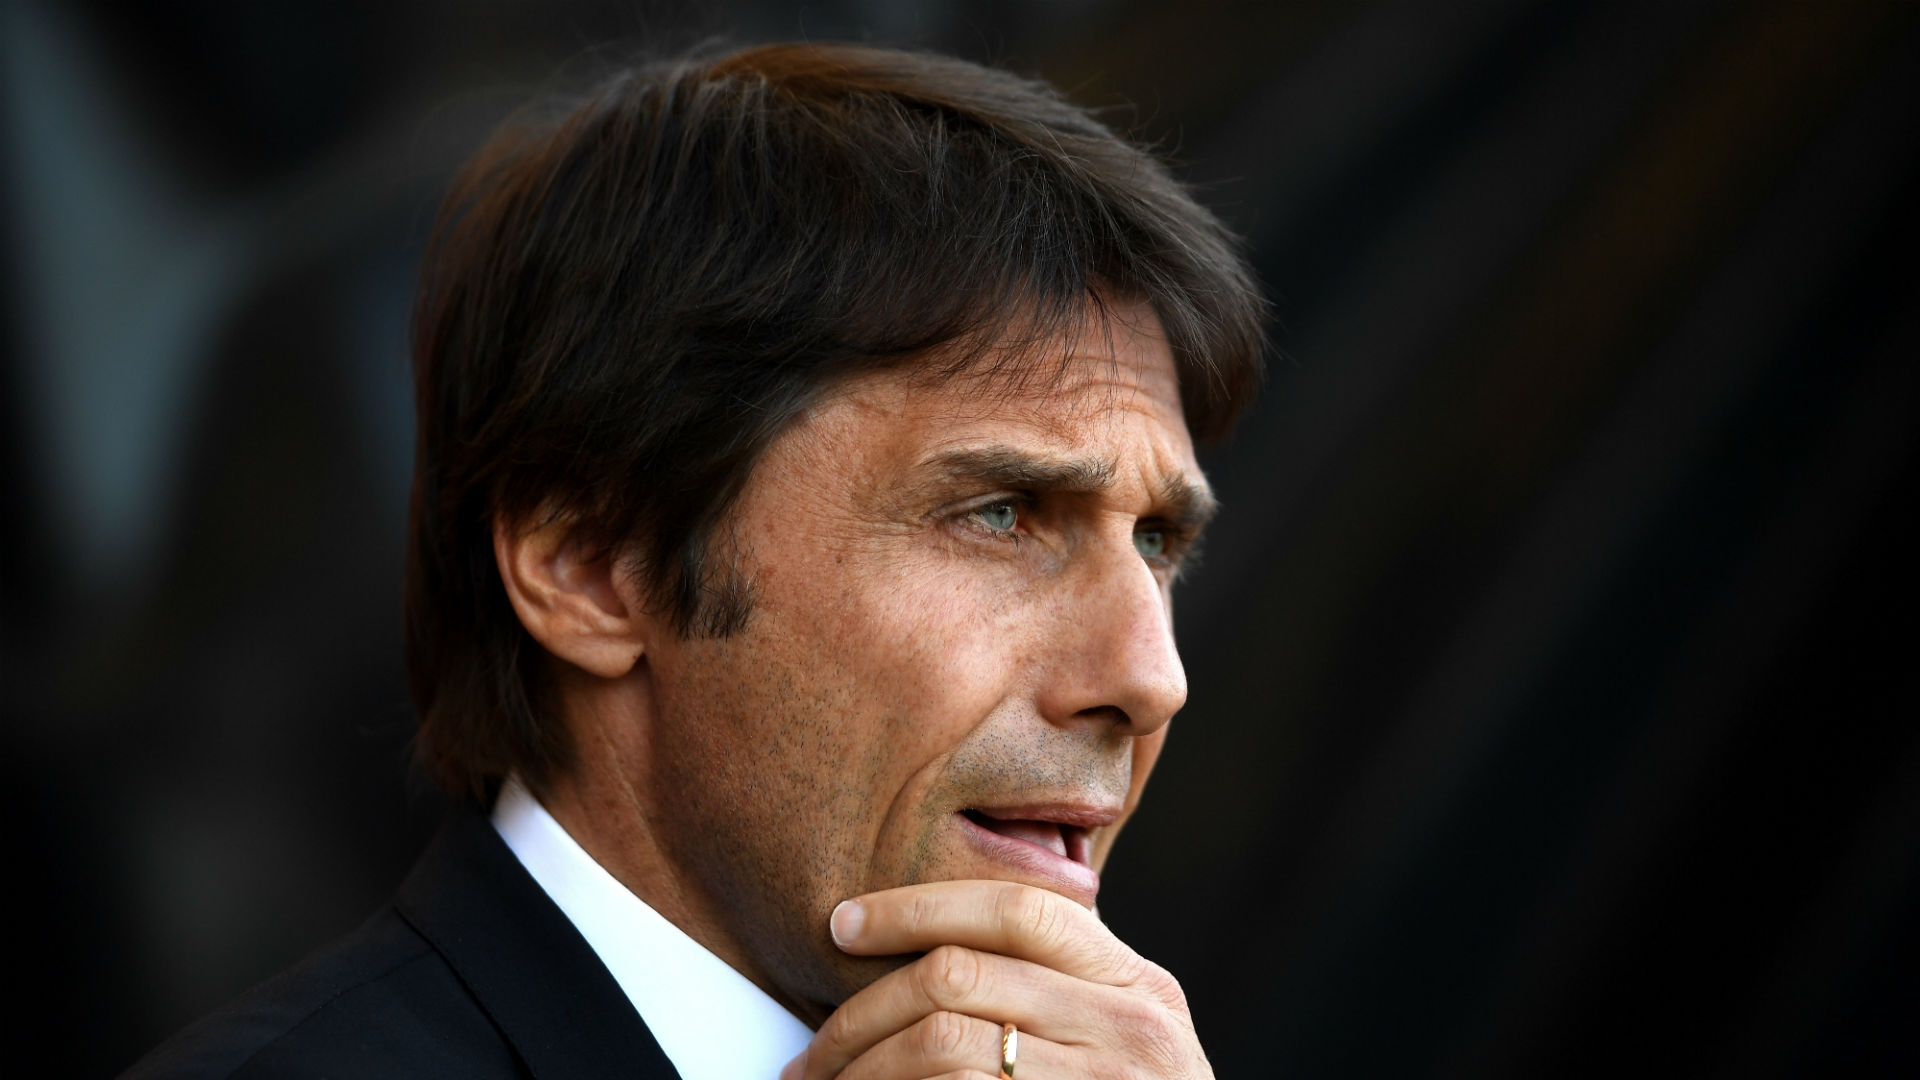 Conte helped Chelsea win the Premier League in spectacular fashion, with the team coming on top in one of the most toughly disputed seasons in recent years.